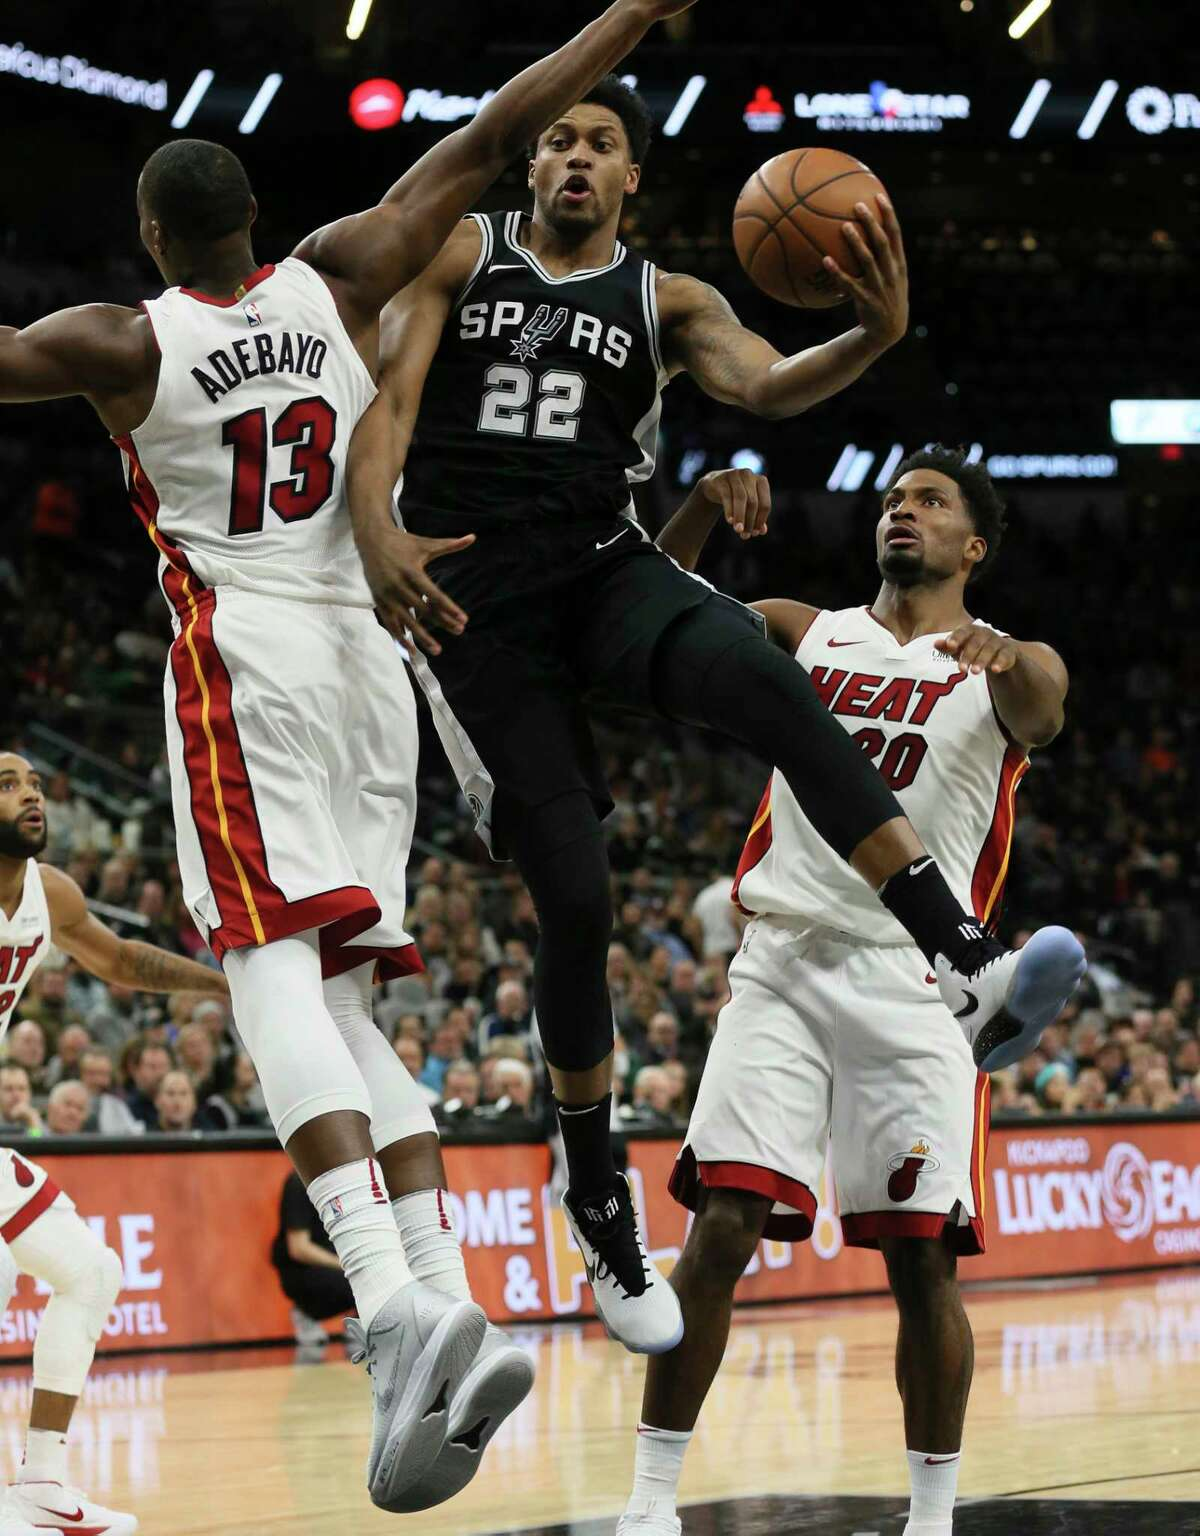 Spurs' Rudy Gay (22) makes a pass while driving between Miami Heat's Bam Adebayo (13) and Justise Winslow (20) at the AT&T Center on Wednesday, Dec. 6, 2017.